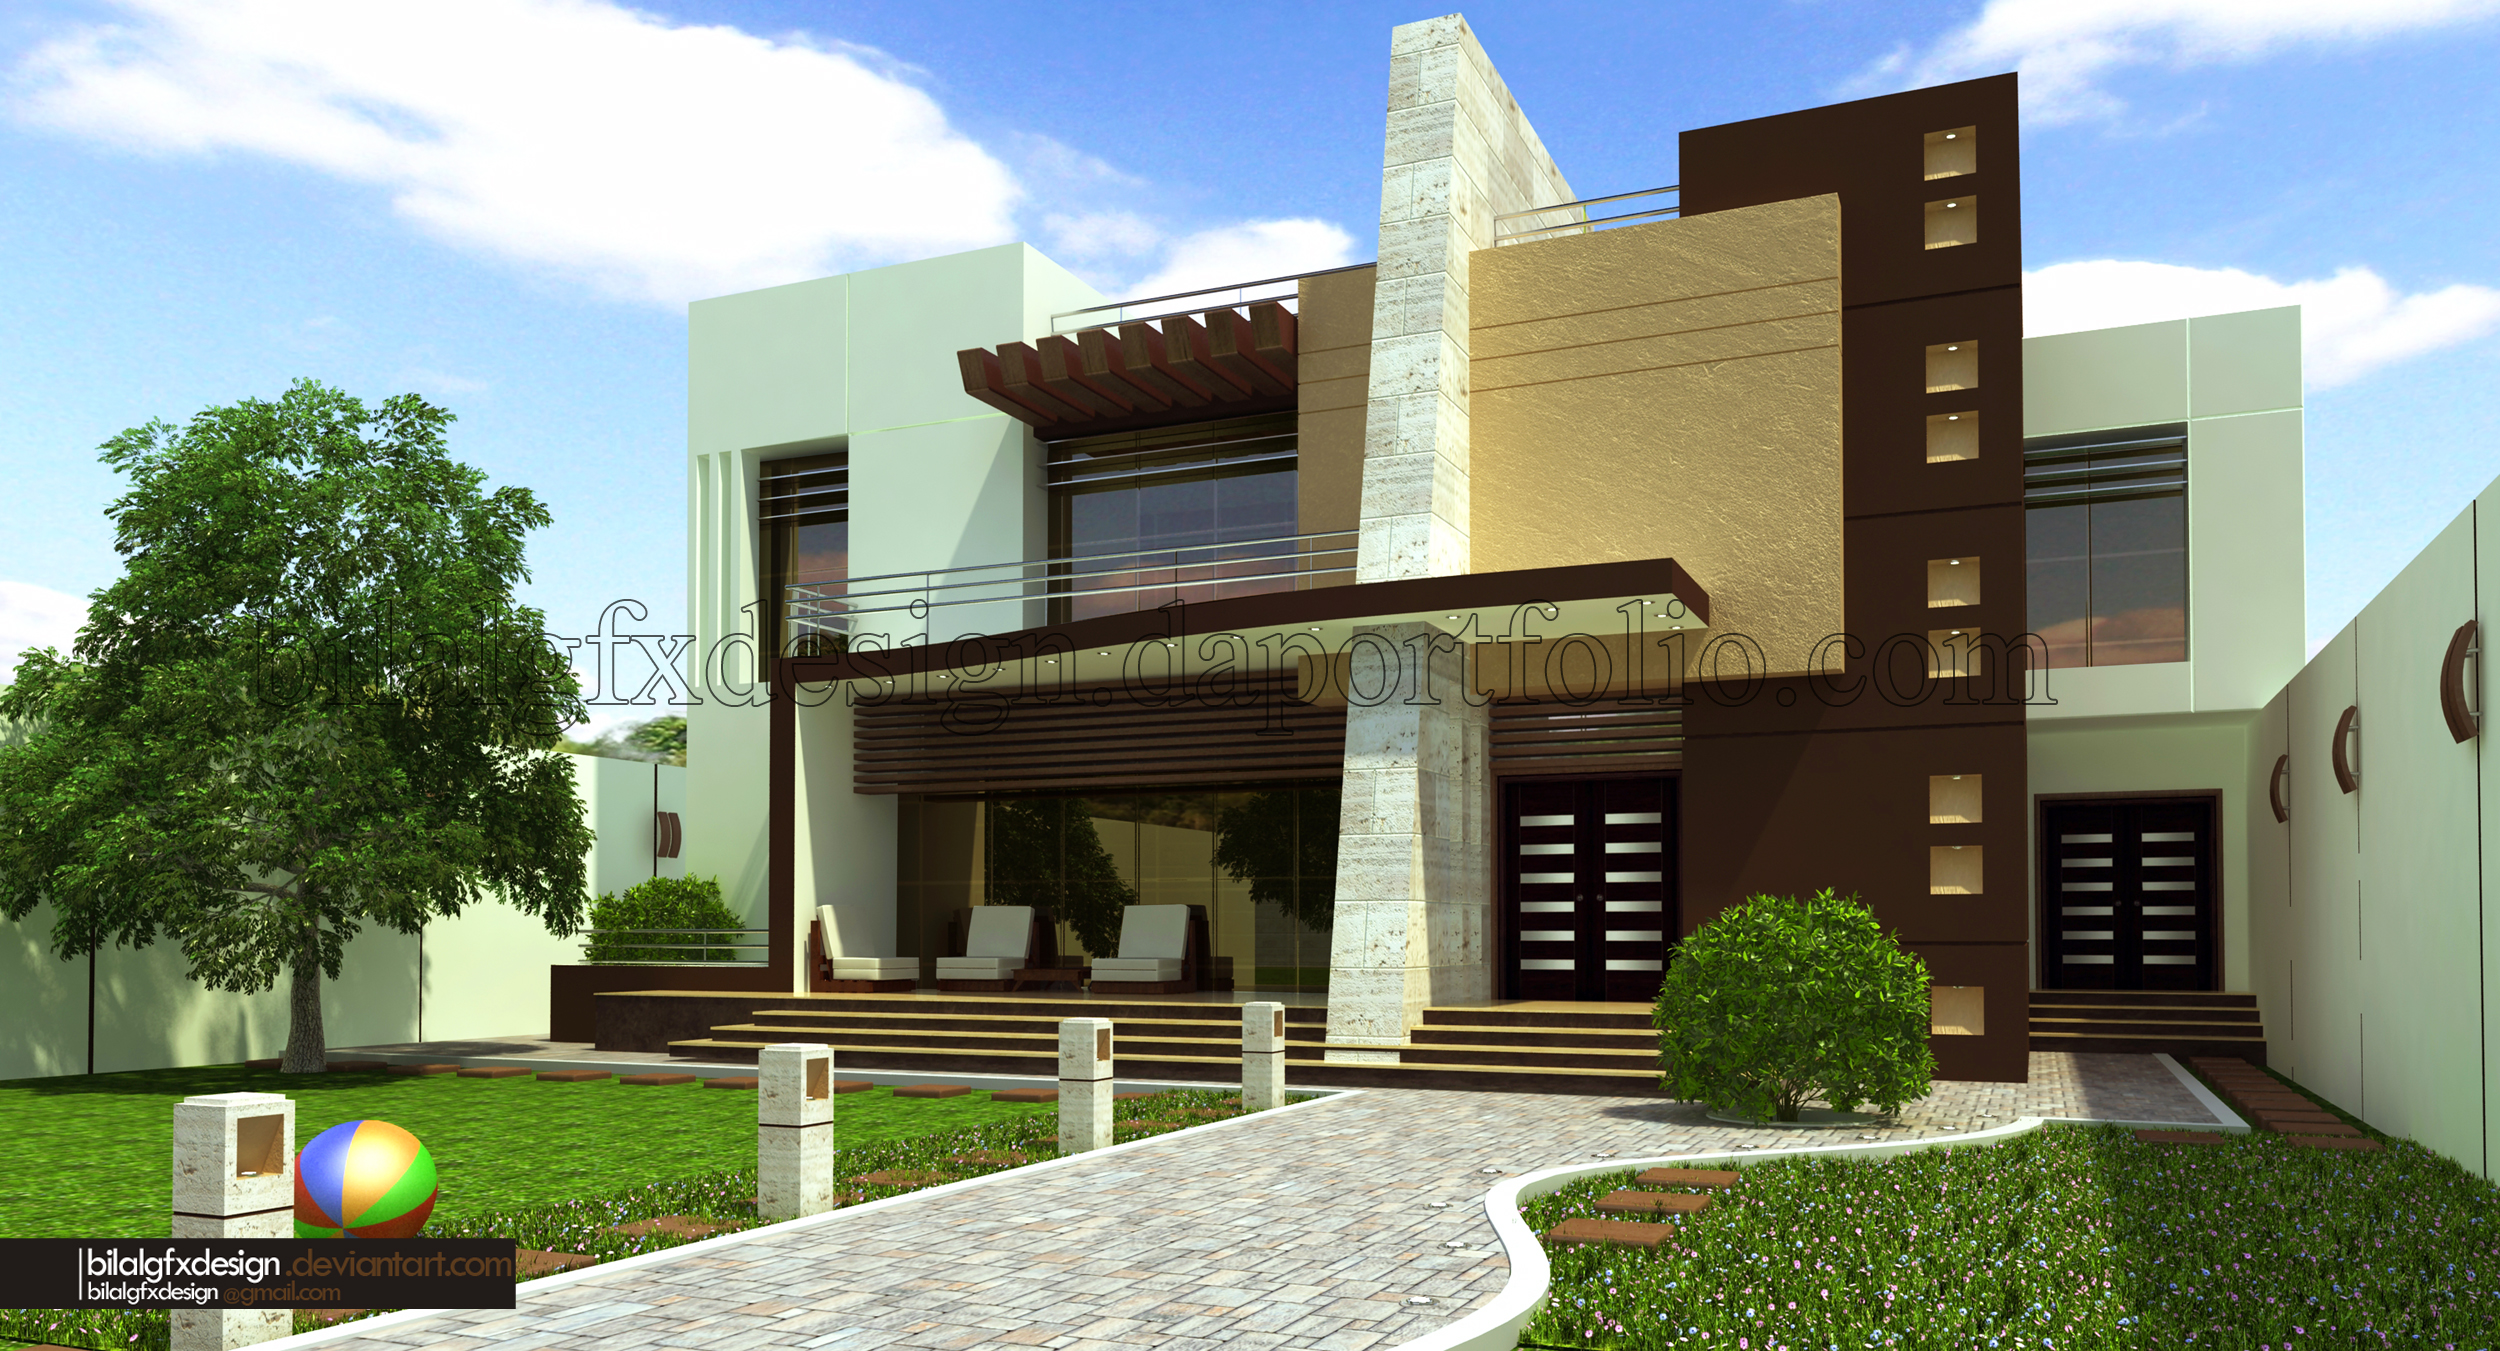 Modern villa 1 by bilalgfxdesign on deviantart for Modern house villa design